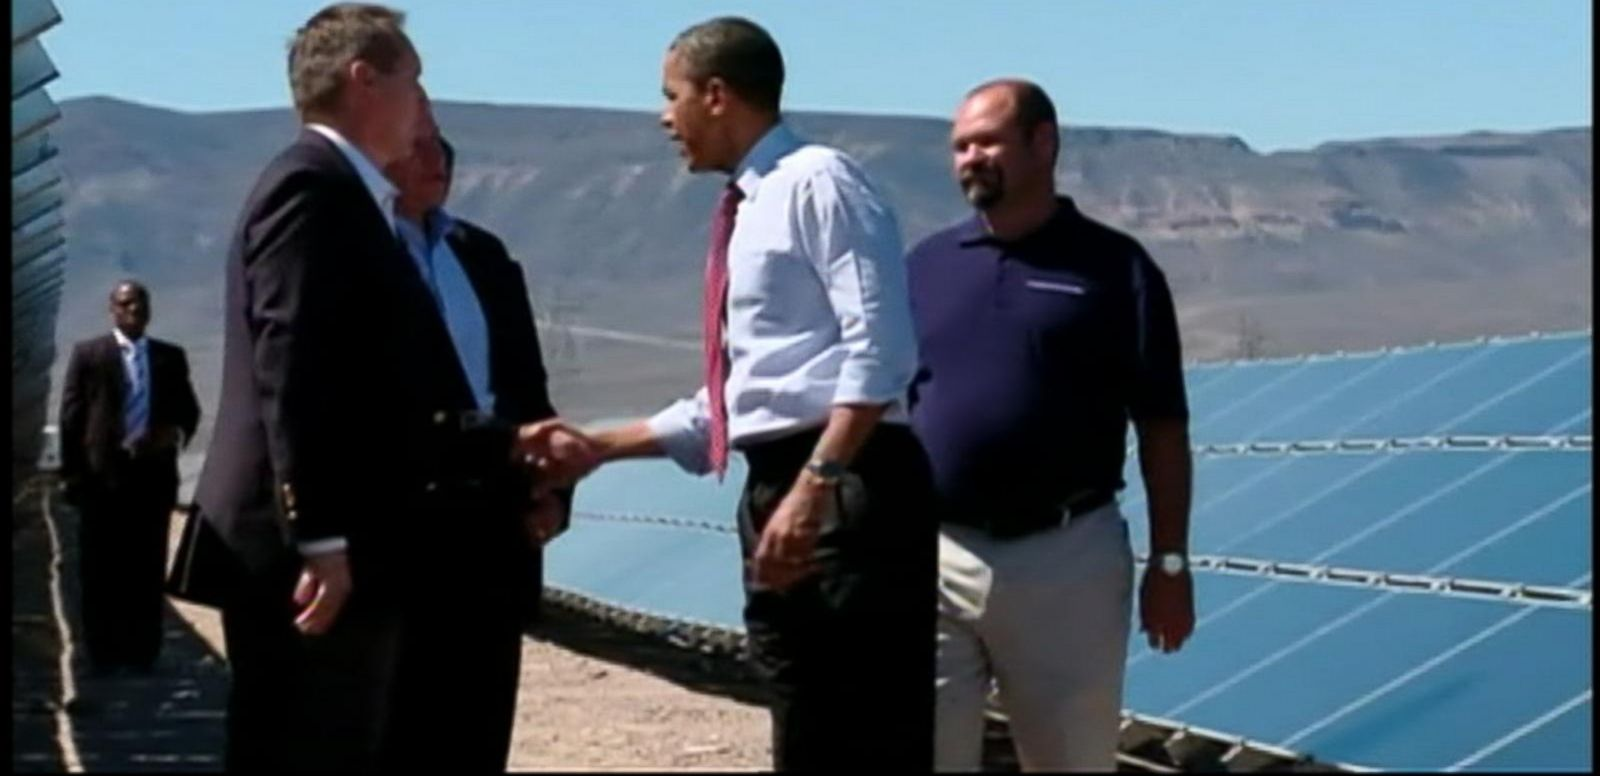 President Obama unveiled his new tough clean energy plan Monday which places new emissions standards on energy plants. ABC News' Karen Travers reports.